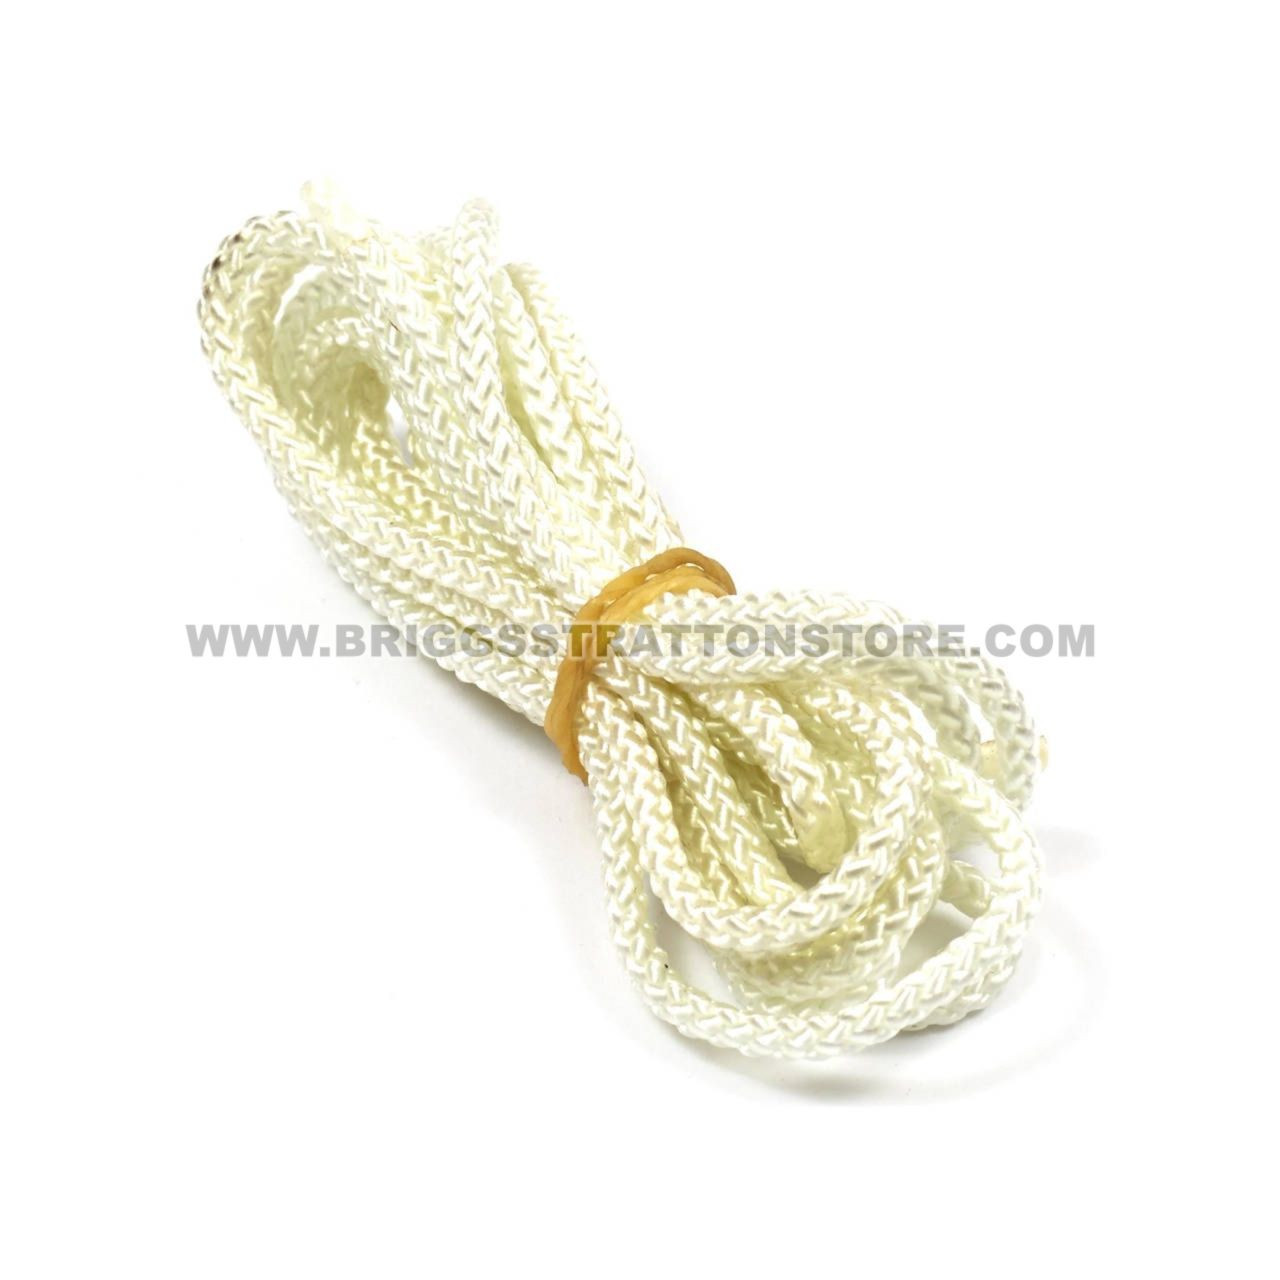 Briggs /& Stratton OEM 280406S replacement rope-starter